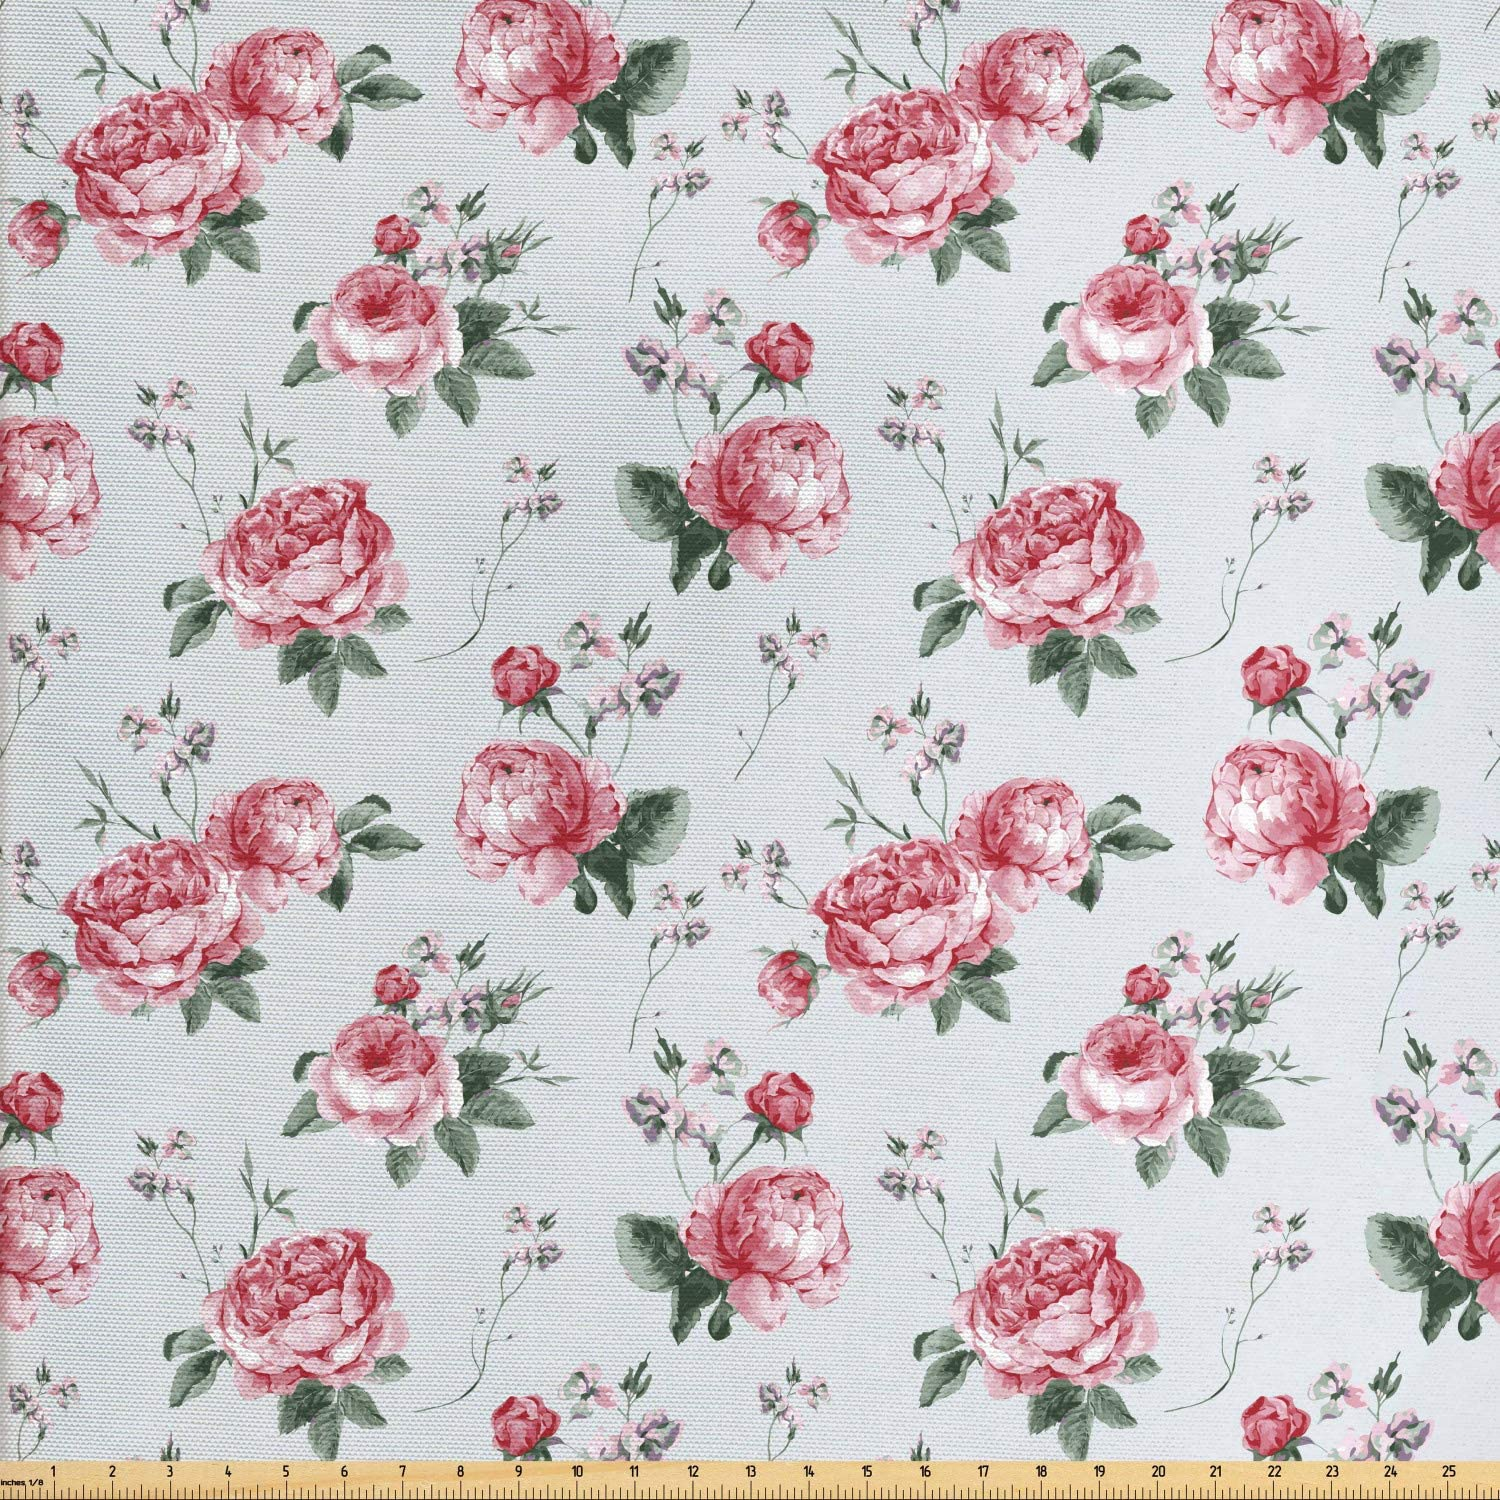 Ambesonne Rose Fabric by The Yard, Blooming English Rose Watercolor Painting Style Garden Shabby Form Wild Flowers, Decorative Fabric for Upholstery and Home Accents, 3 Yards, Blush Green